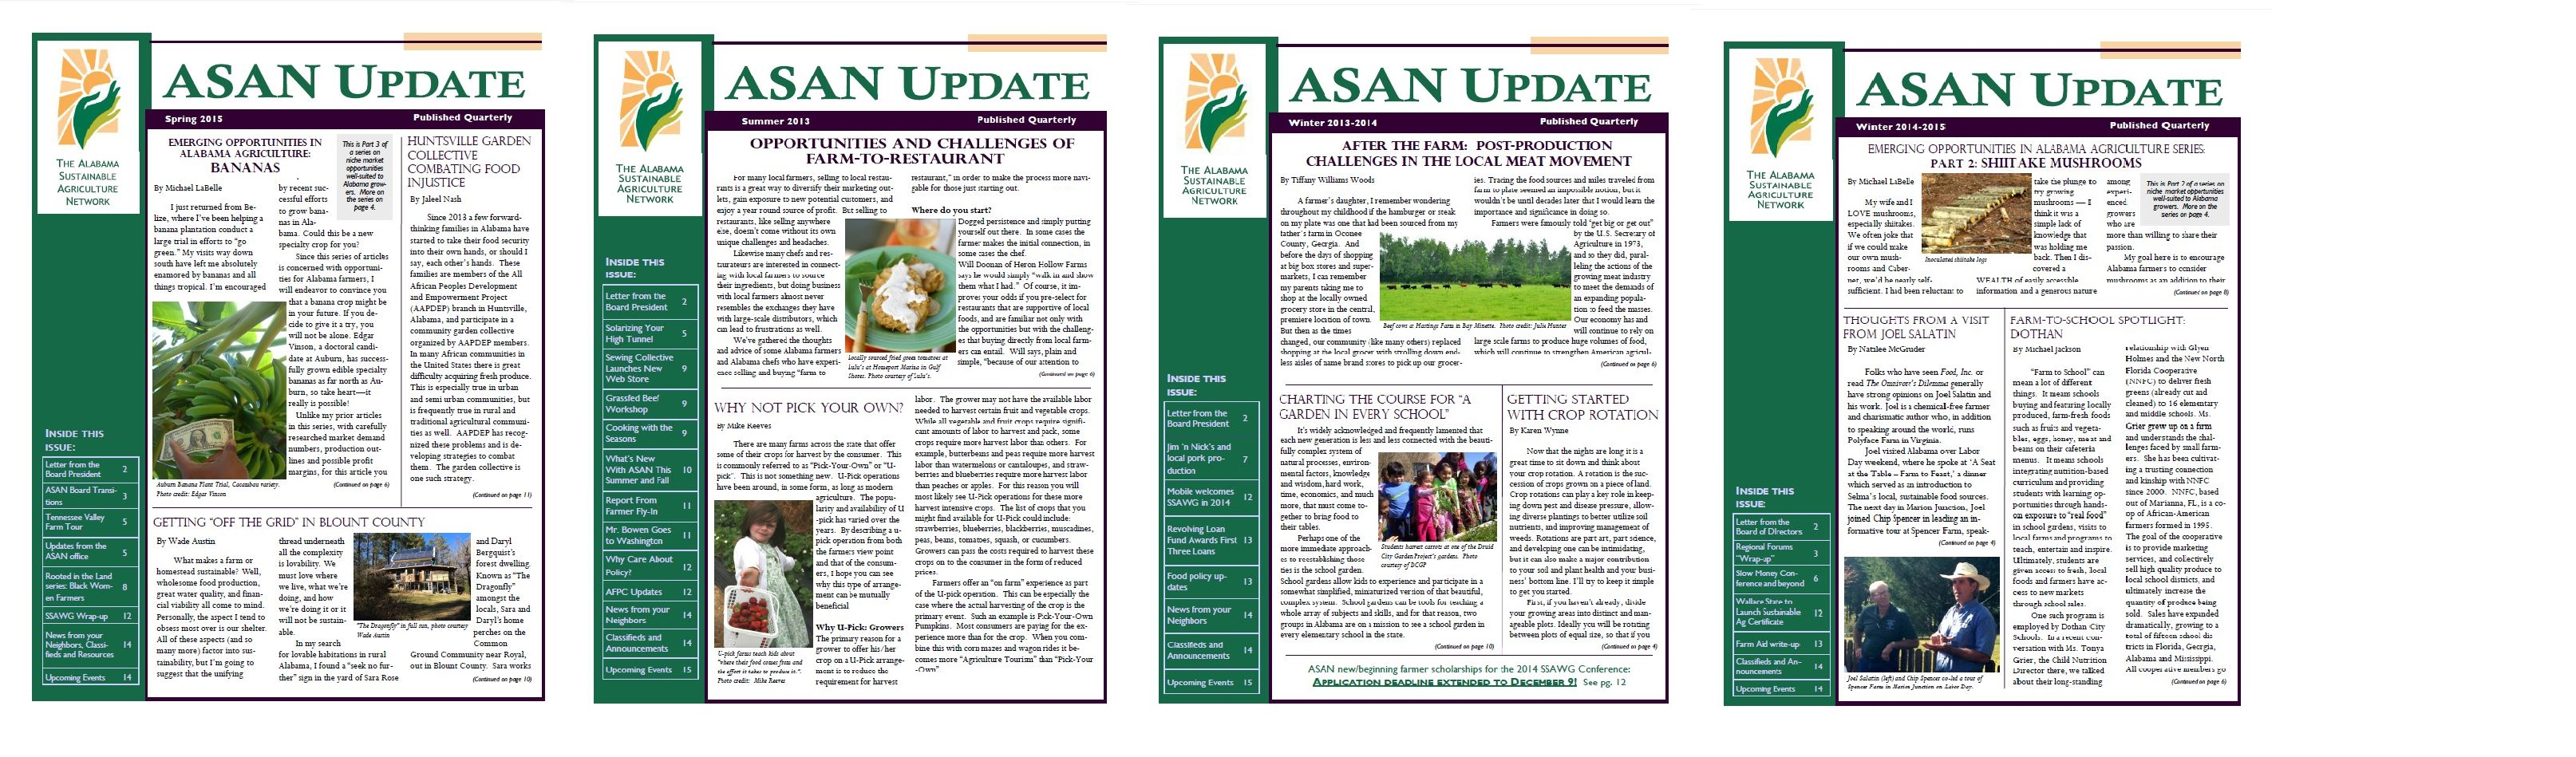 Archived Issues of ASAN Update (Quarterly Newsletter)